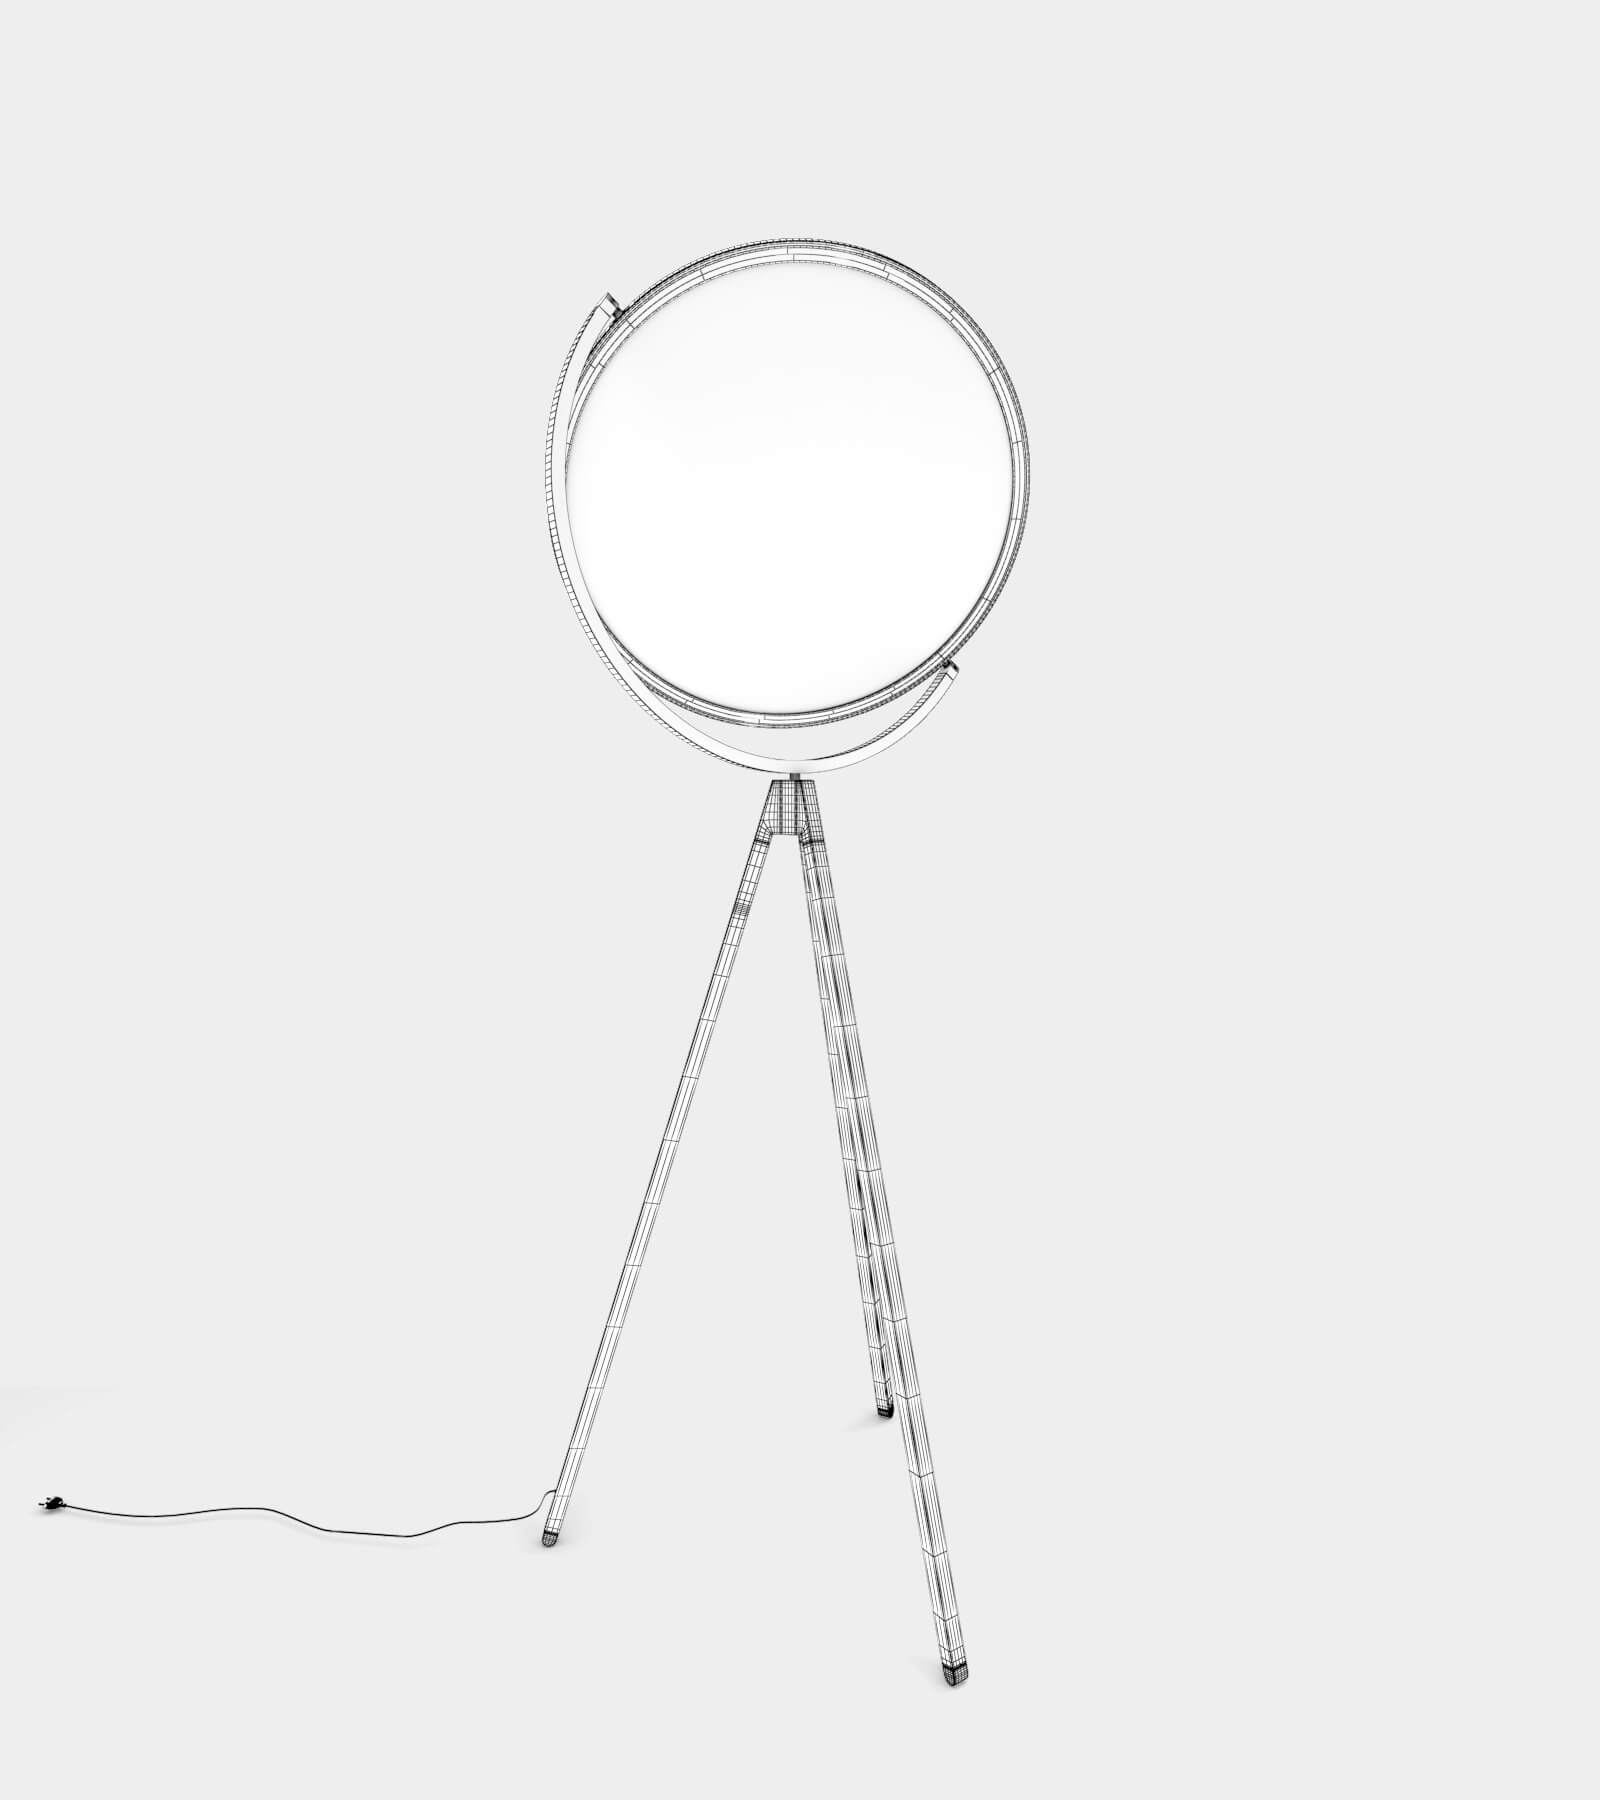 Floor lamp with round light shape-wire 3D Model